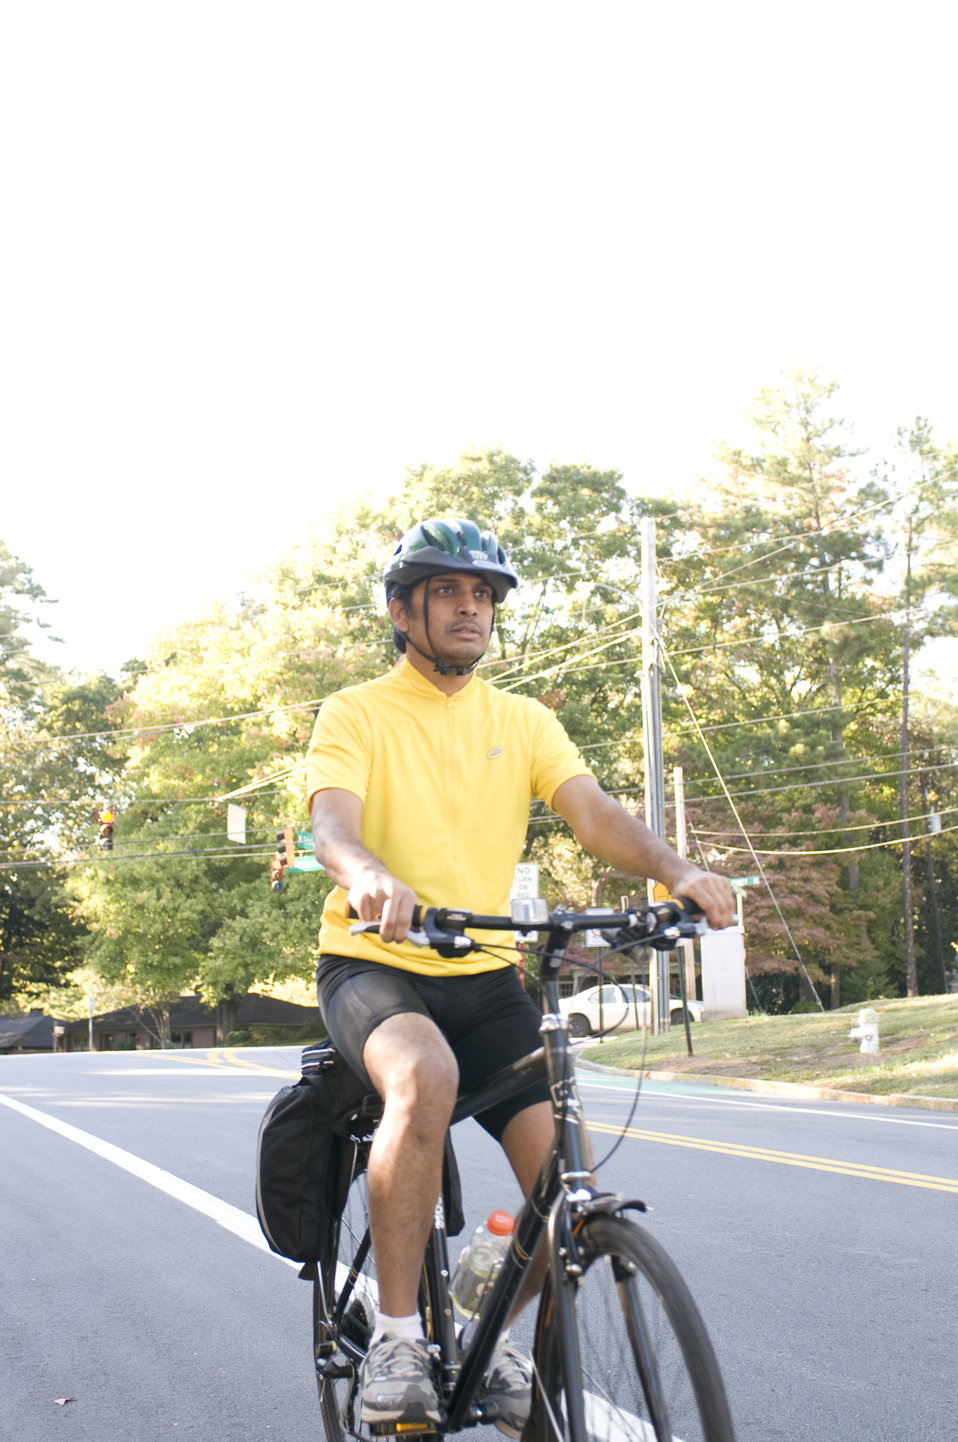 Photographed on a sunny Georgia day was a male bicyclist who had embarked on a morning bicycle ride. Note the brightly-colored shirt he was